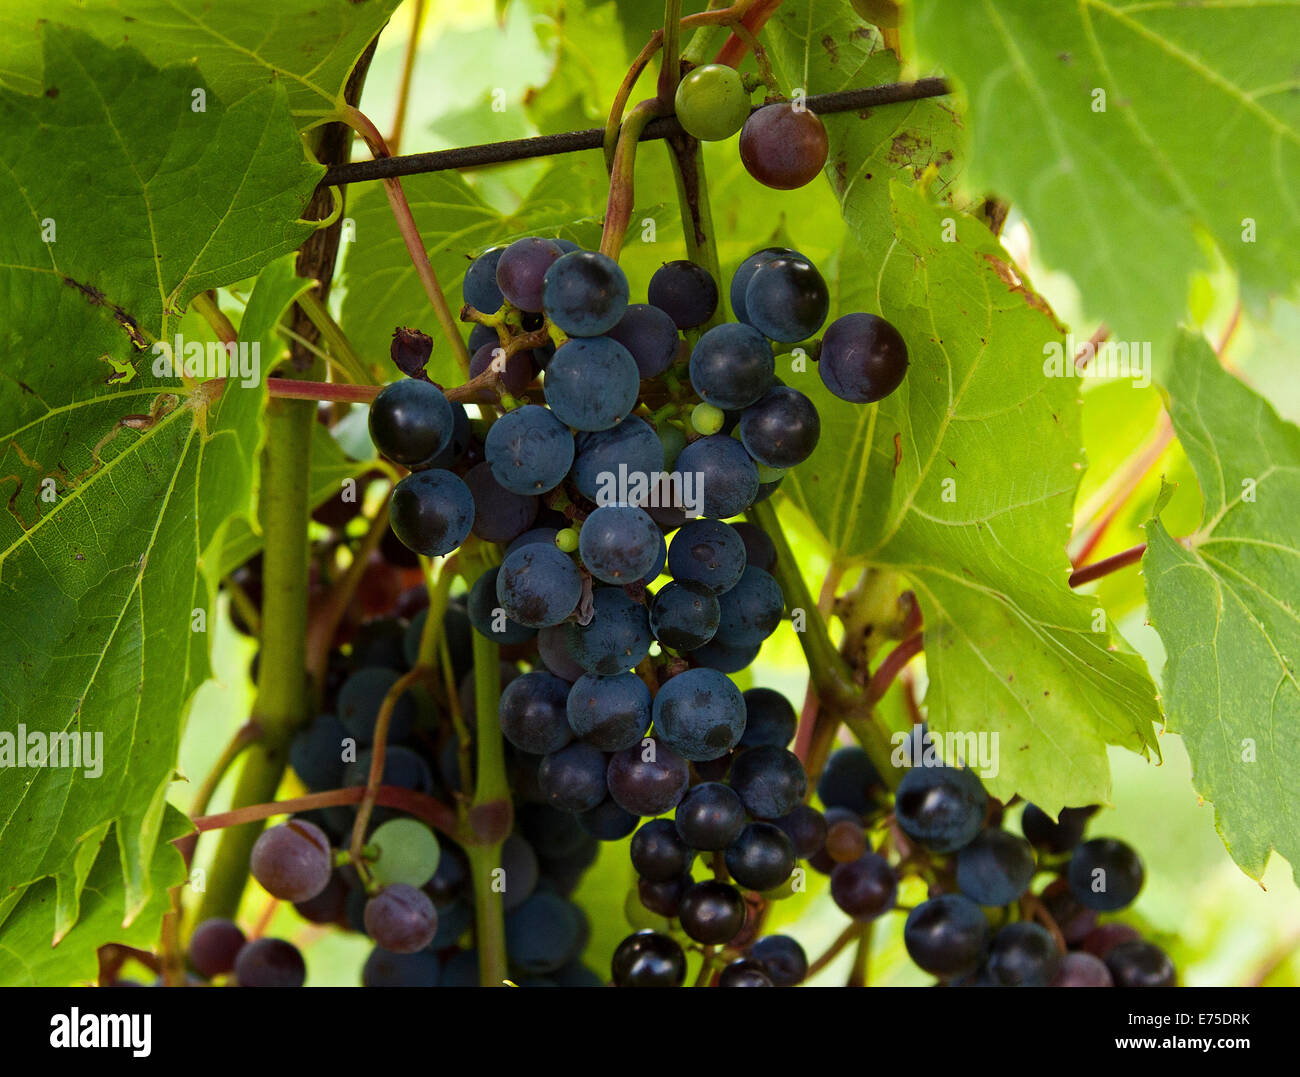 Light Hall Vineyards, grapes, Winery, Prince Edward County, grapes on the vine, France, wine, vines, nature, harvest, - Stock Image